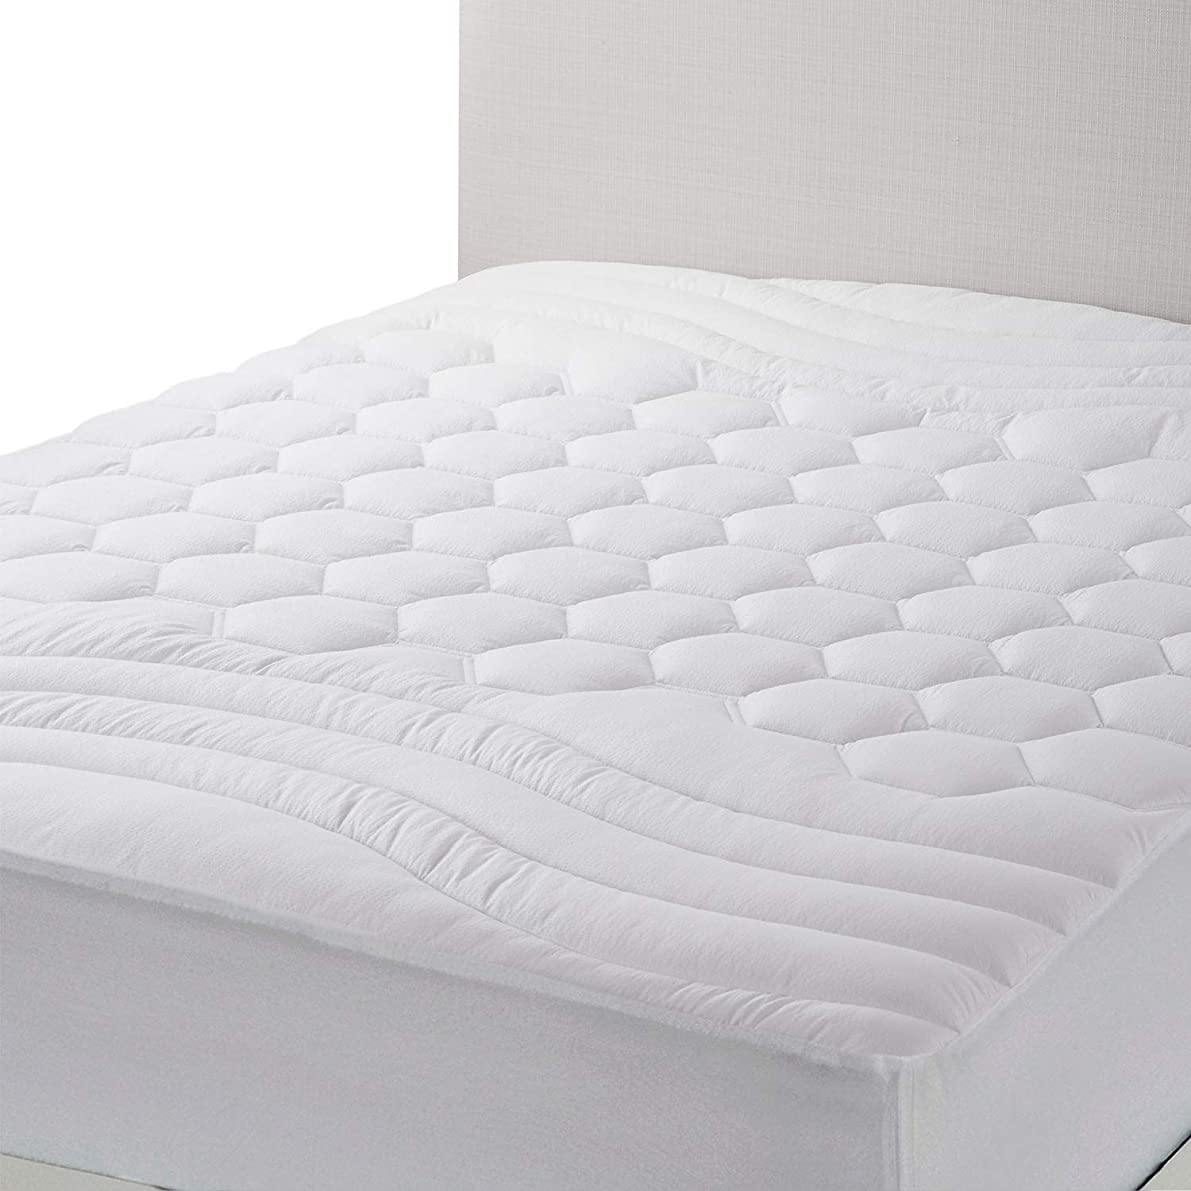 Bedsure Mattress Pad Twin XL/Twin Extra Long Size Hypoallergenic - Breathable - Ultra Soft Quilted Mattress Protector, Fitted Sheet Mattress Cover White